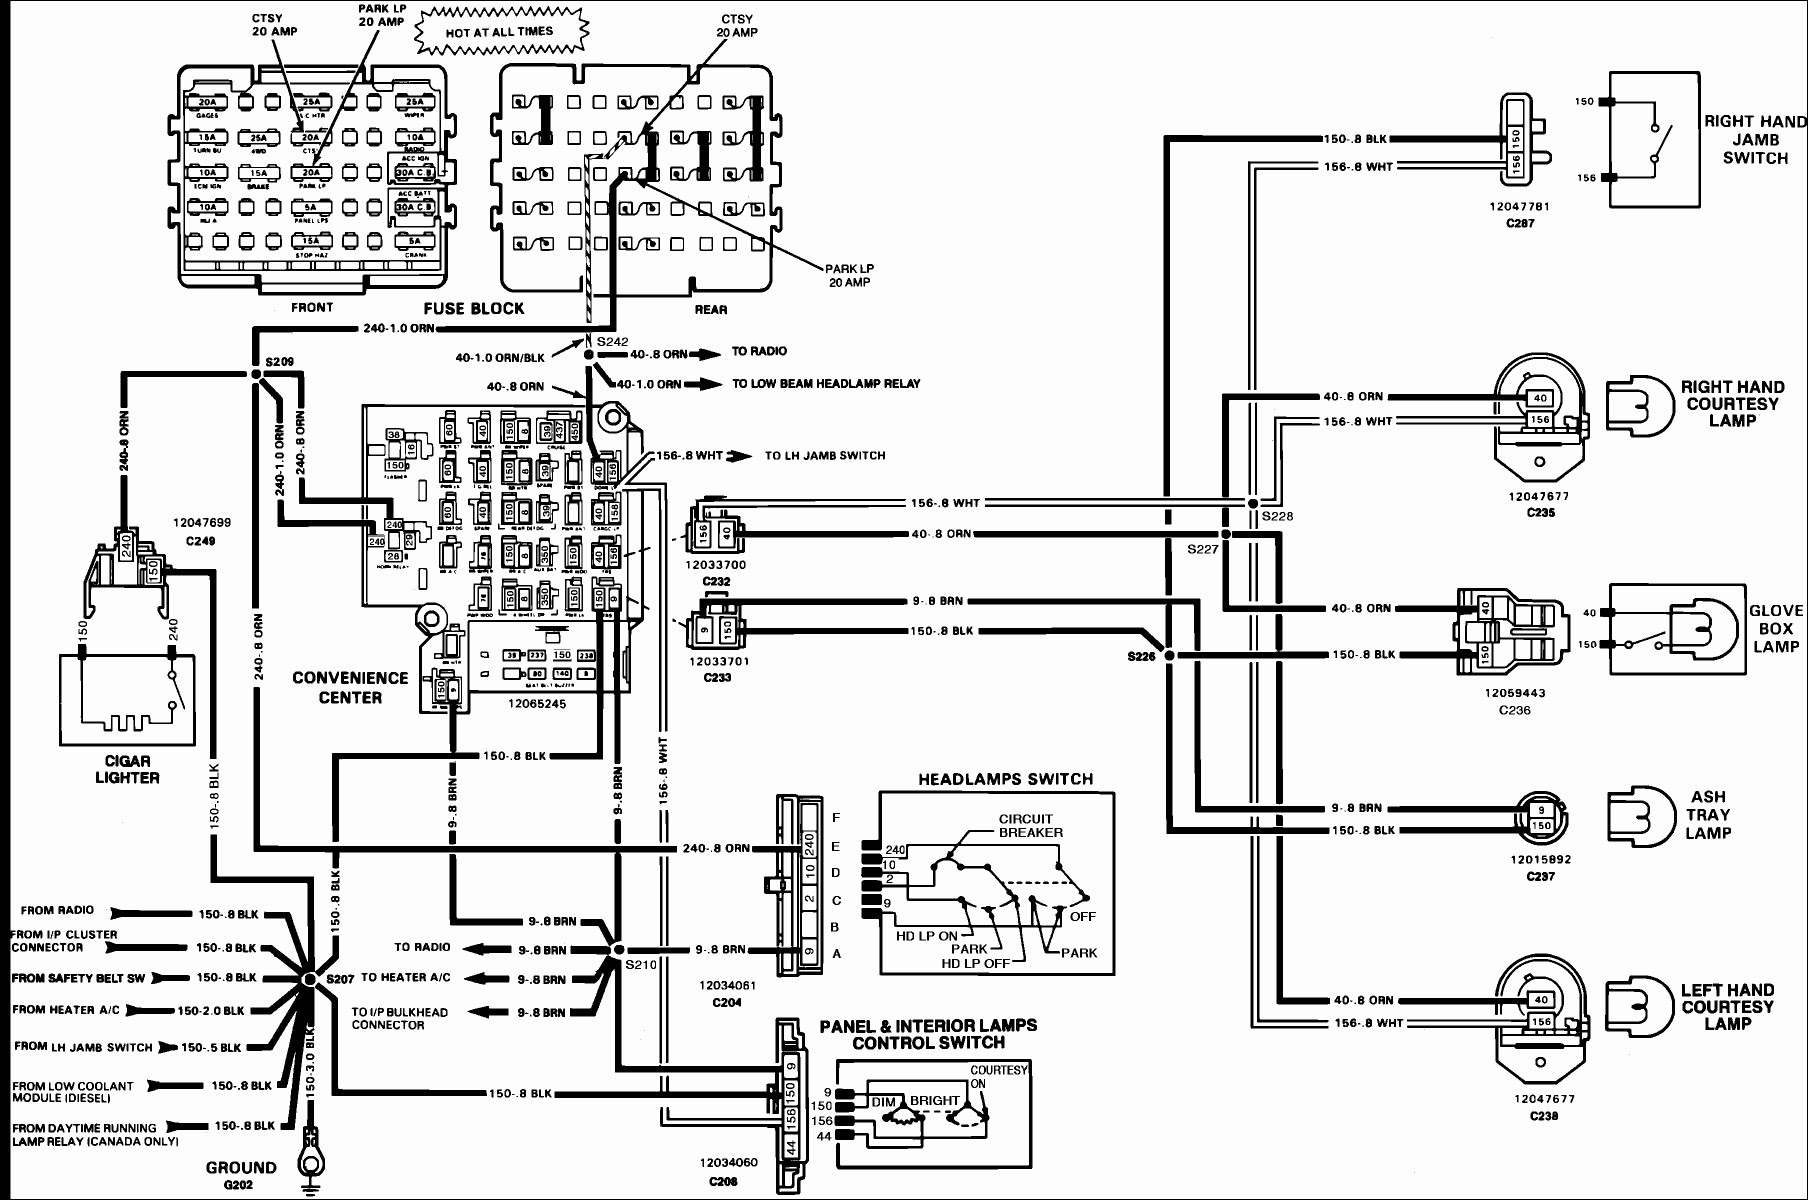 Diagram 1972 Chevy C10 Horn Wiring Diagram Full Version Hd Quality Wiring Diagram Soft Wiring Media90 It